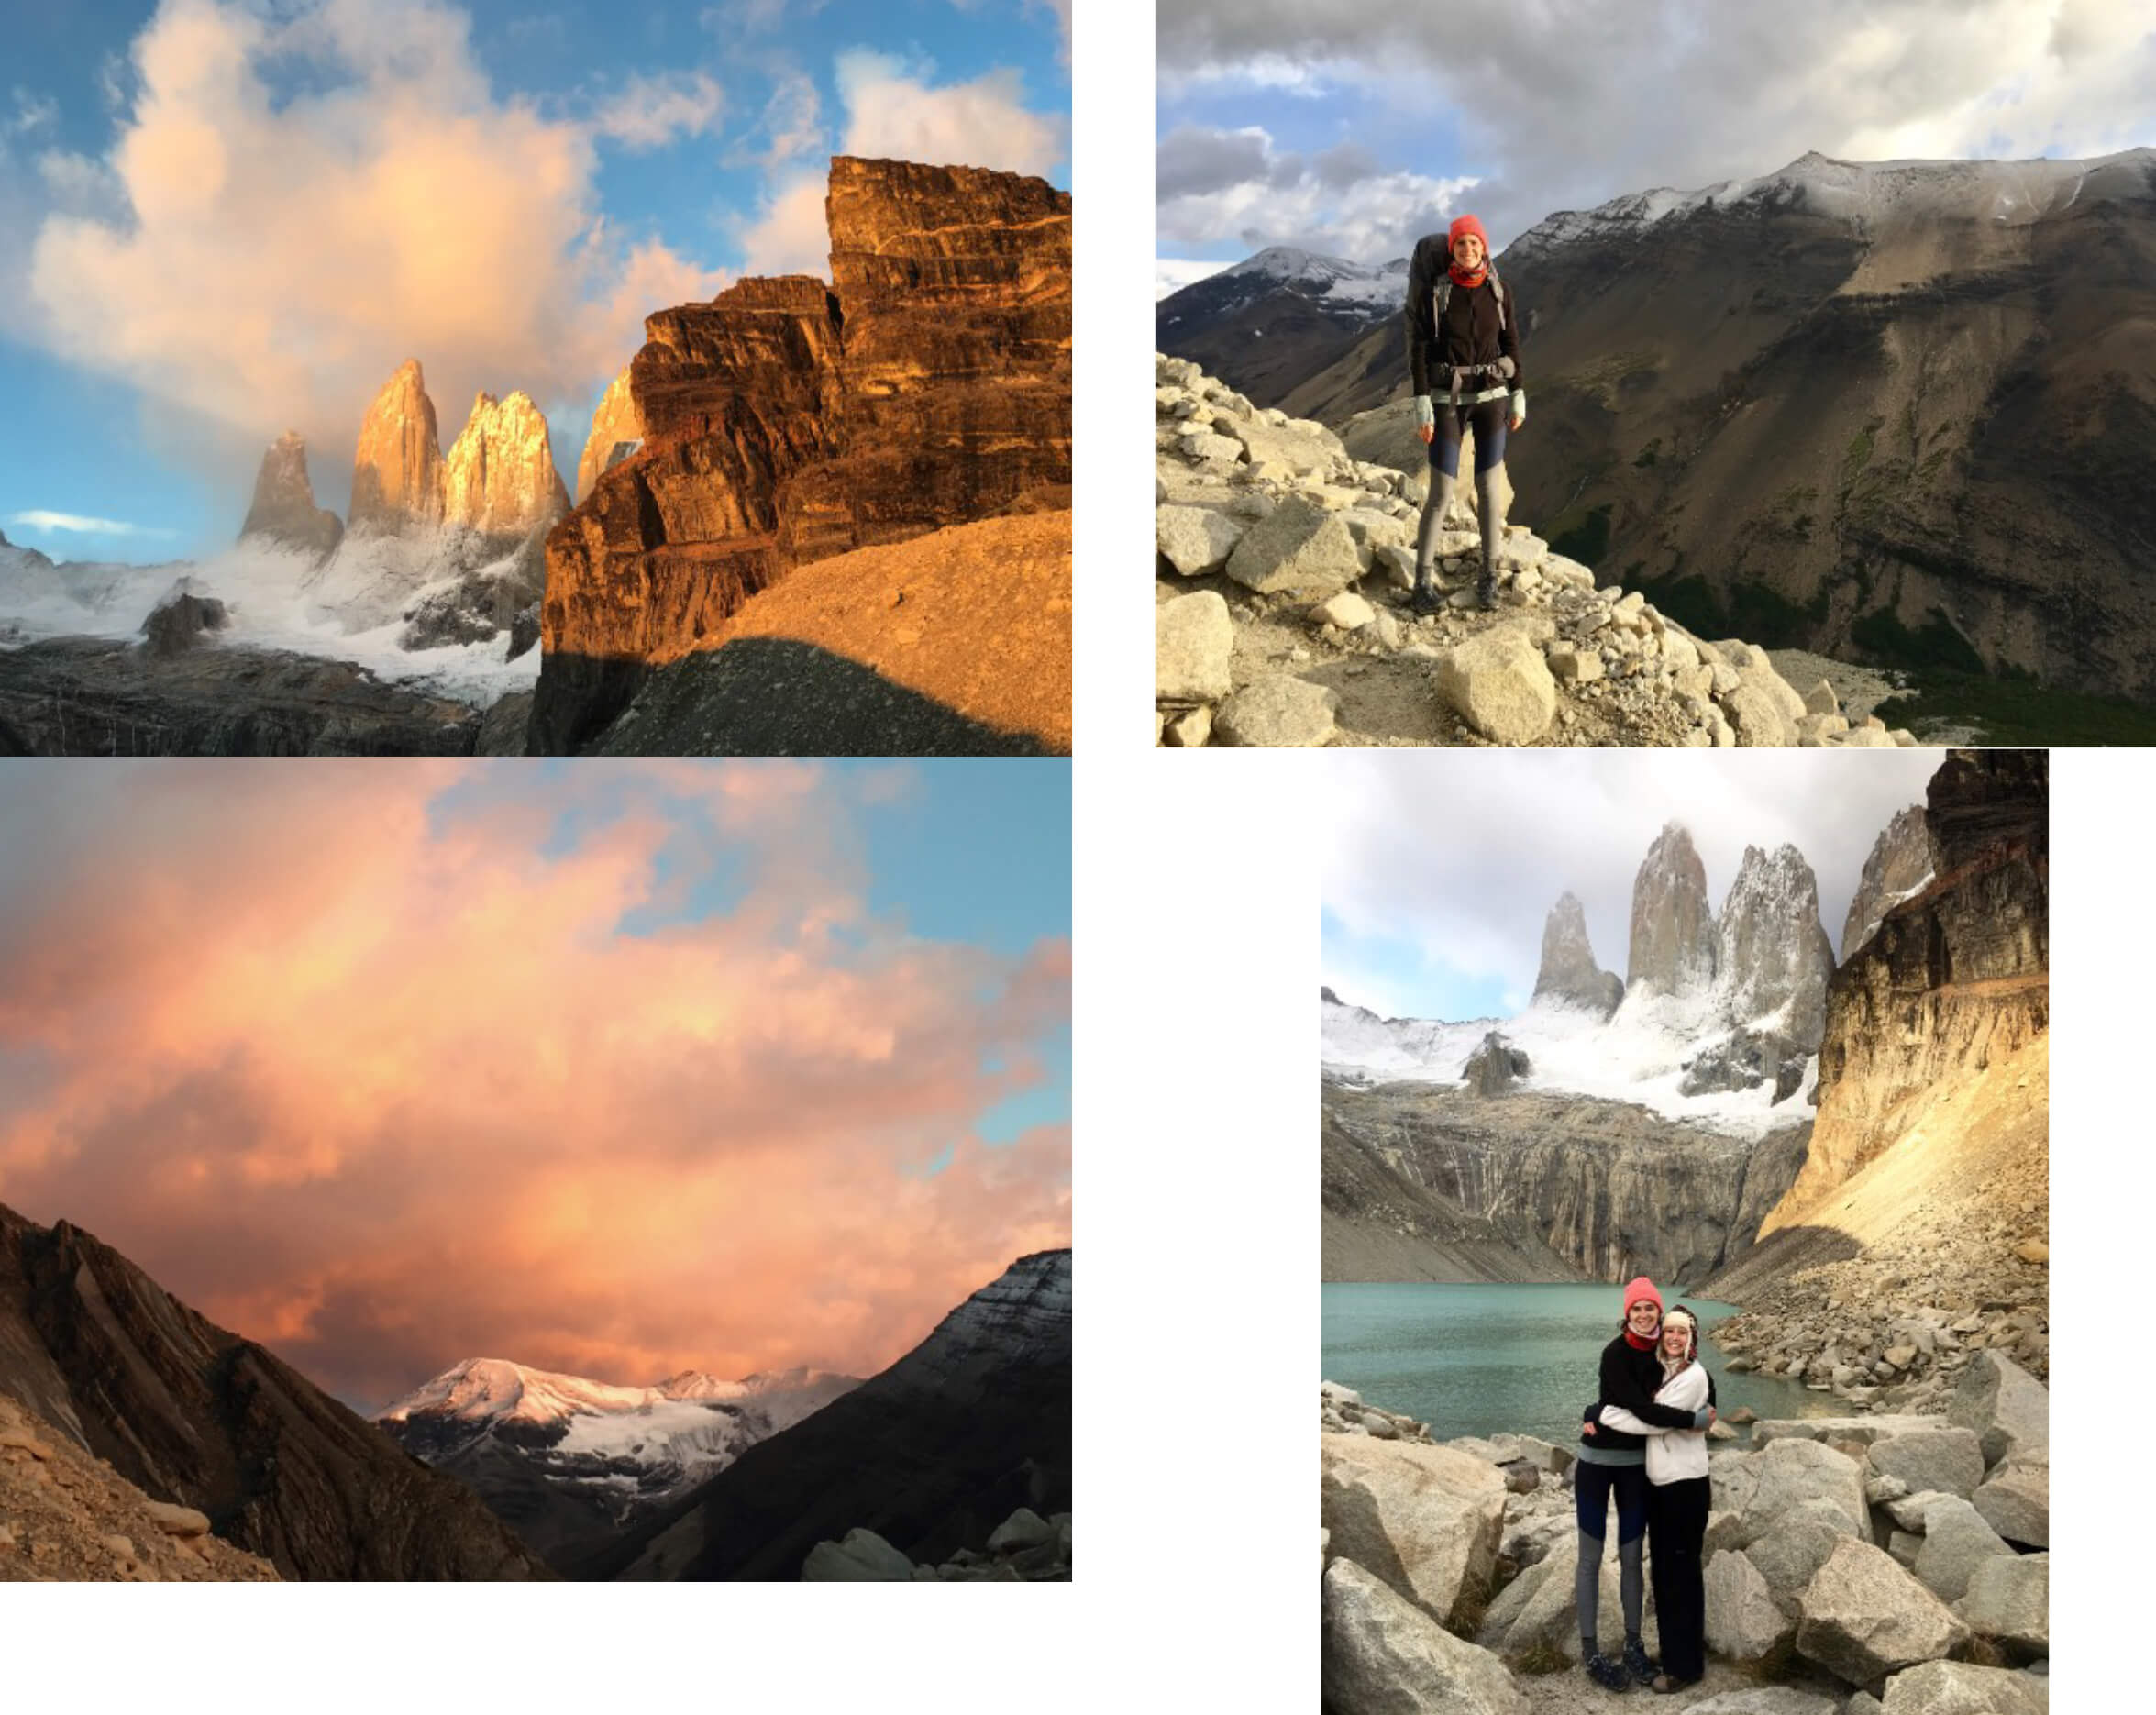 Experience in Torres del Paine